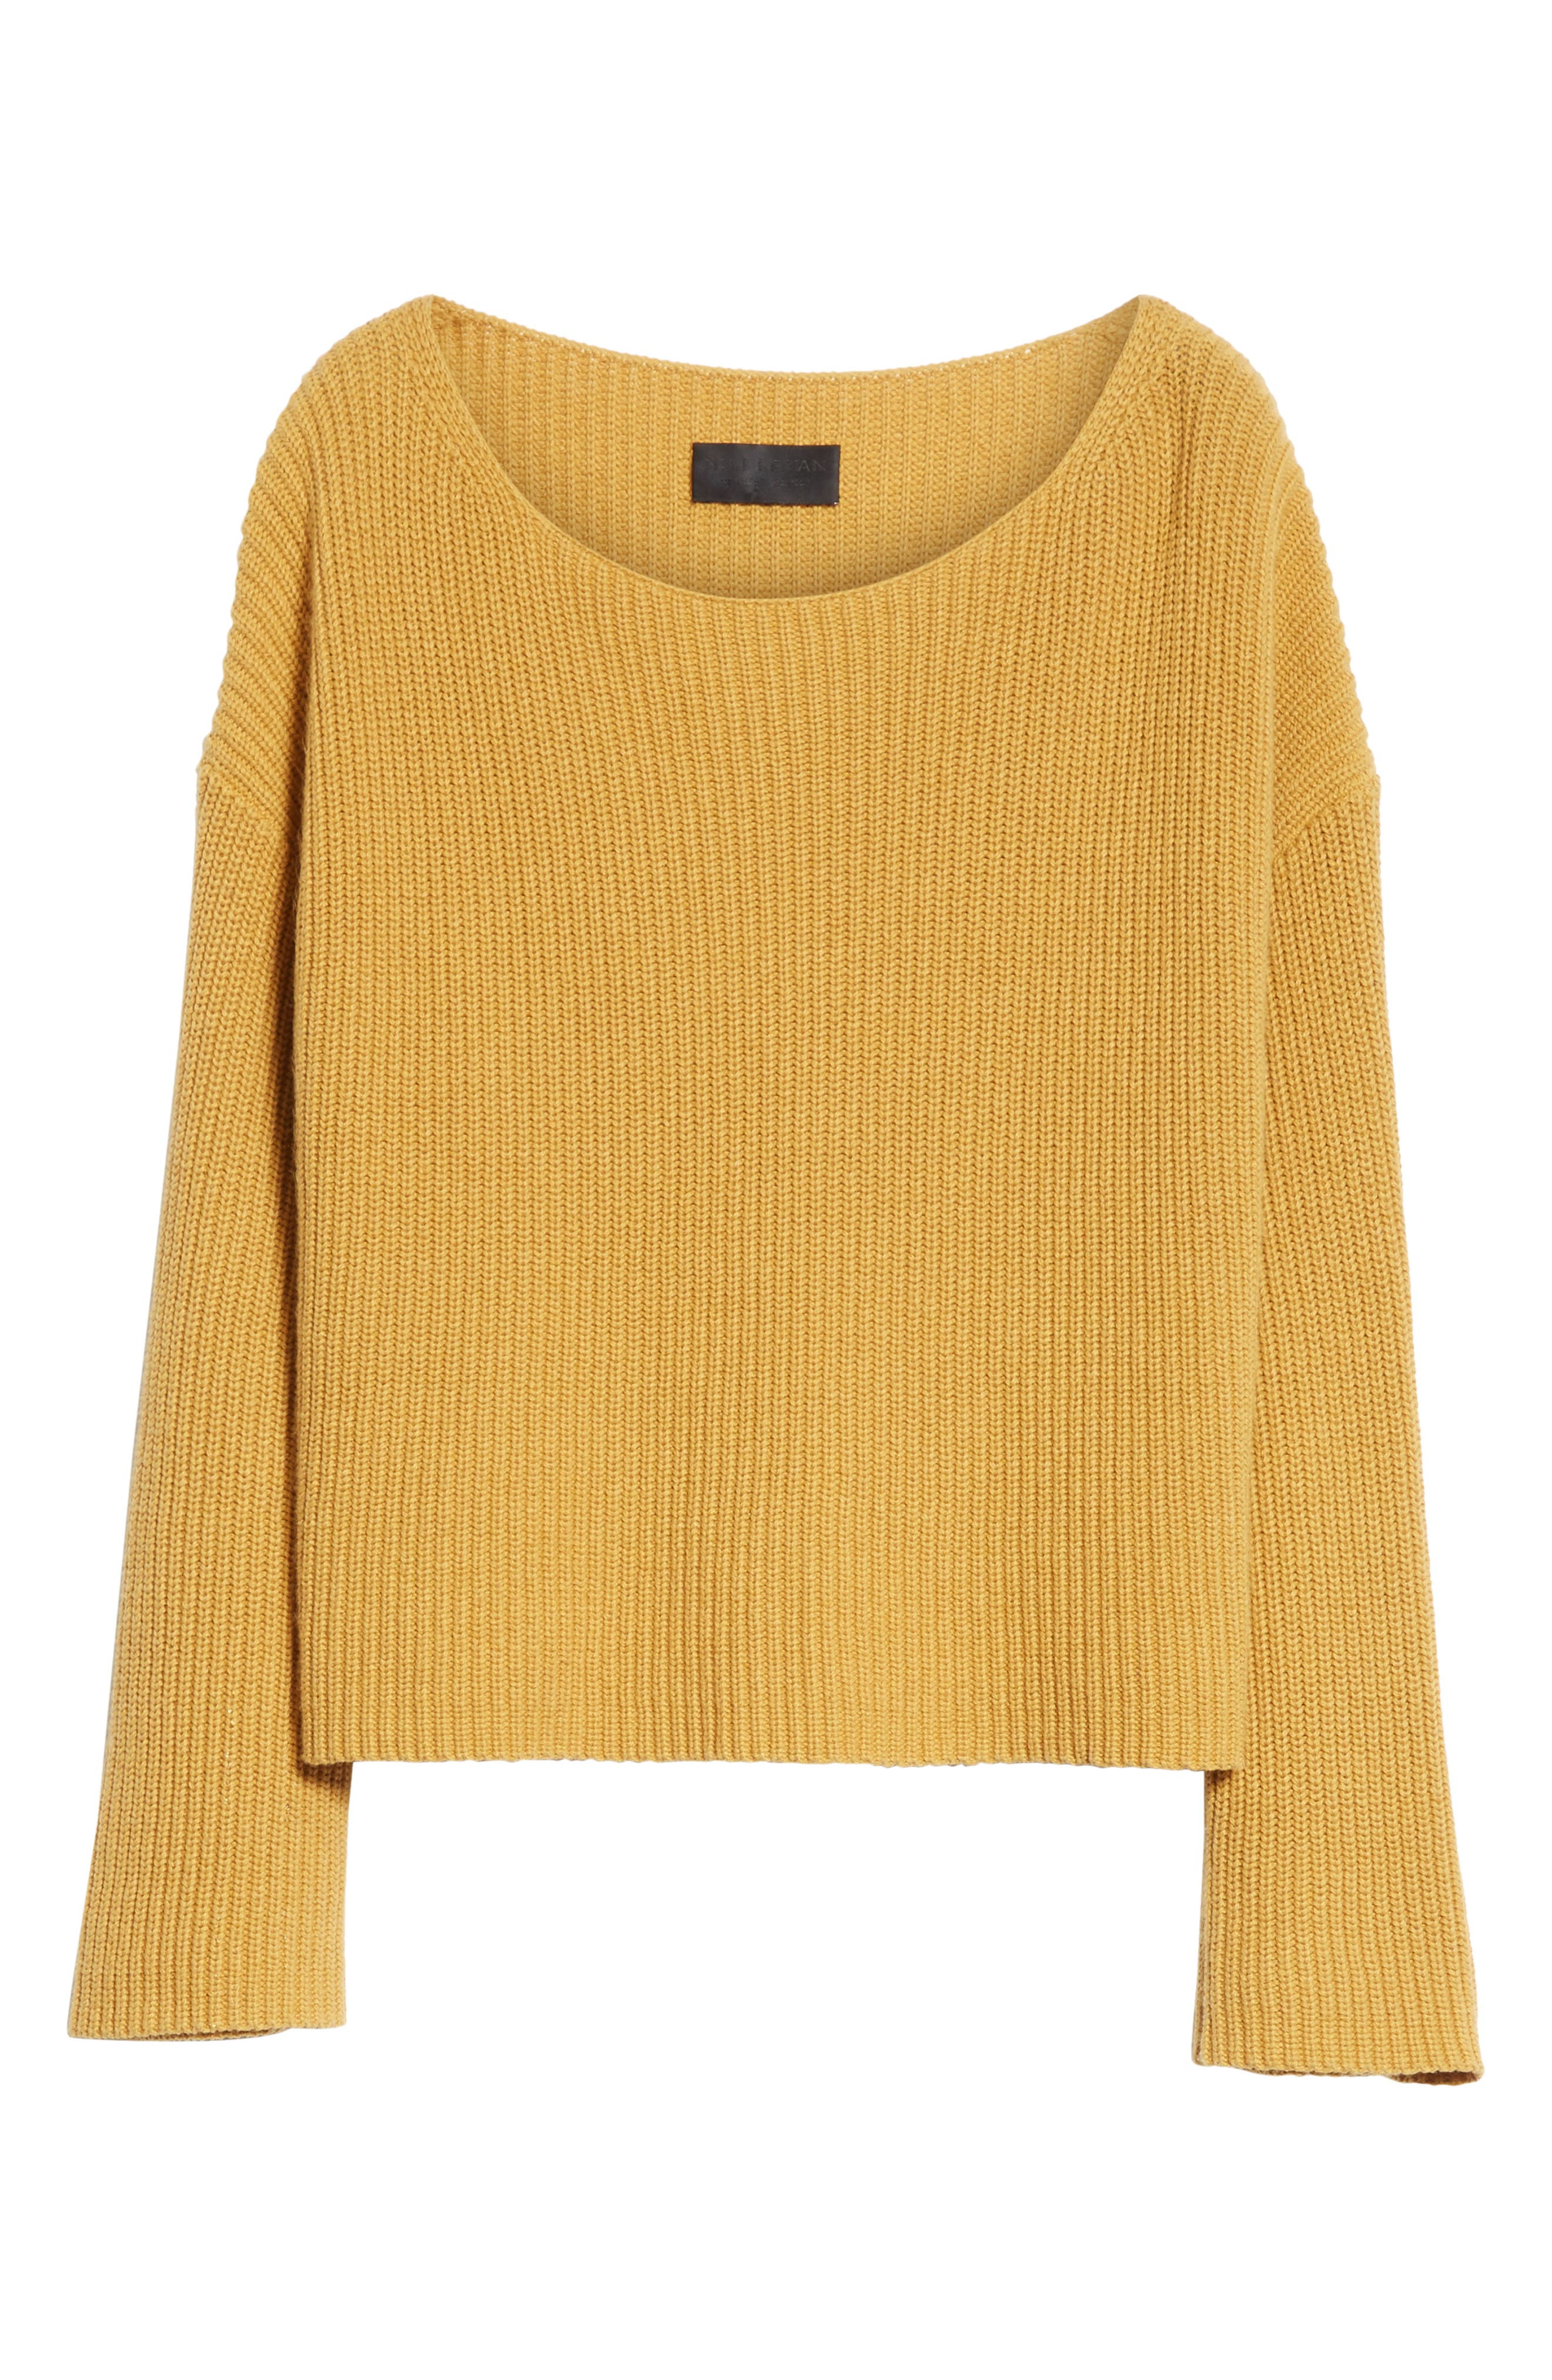 Martindale Ribbed Cotton, Cashmere & Silk Sweater,                             Alternate thumbnail 6, color,                             Mustard